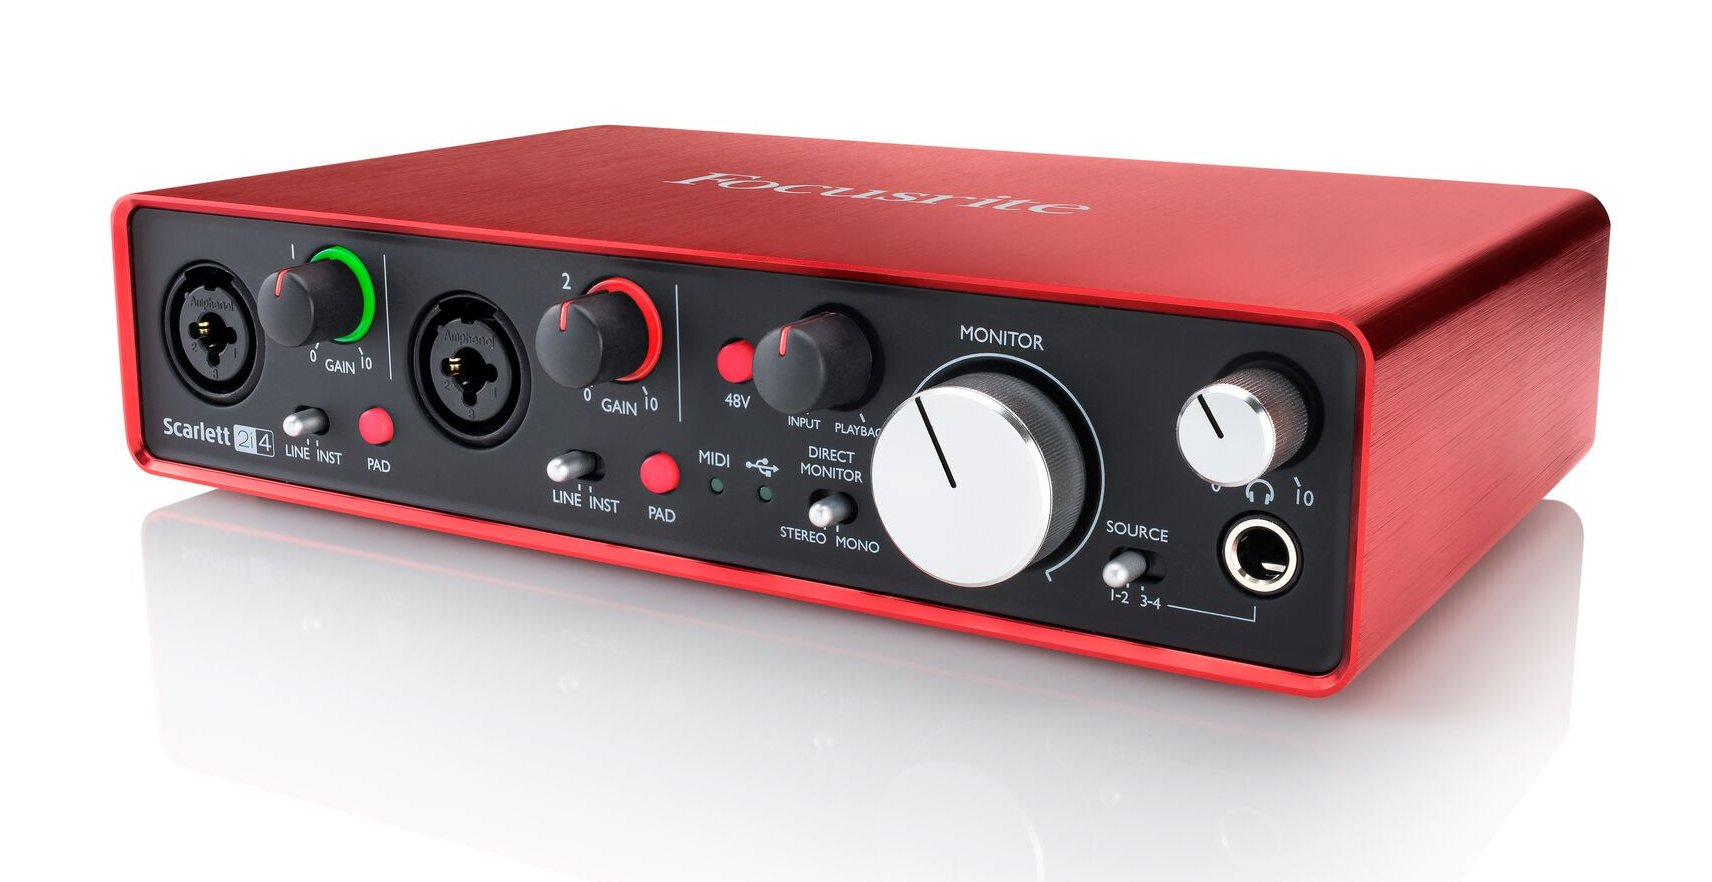 2x4 USB 2.0 Audio Interface